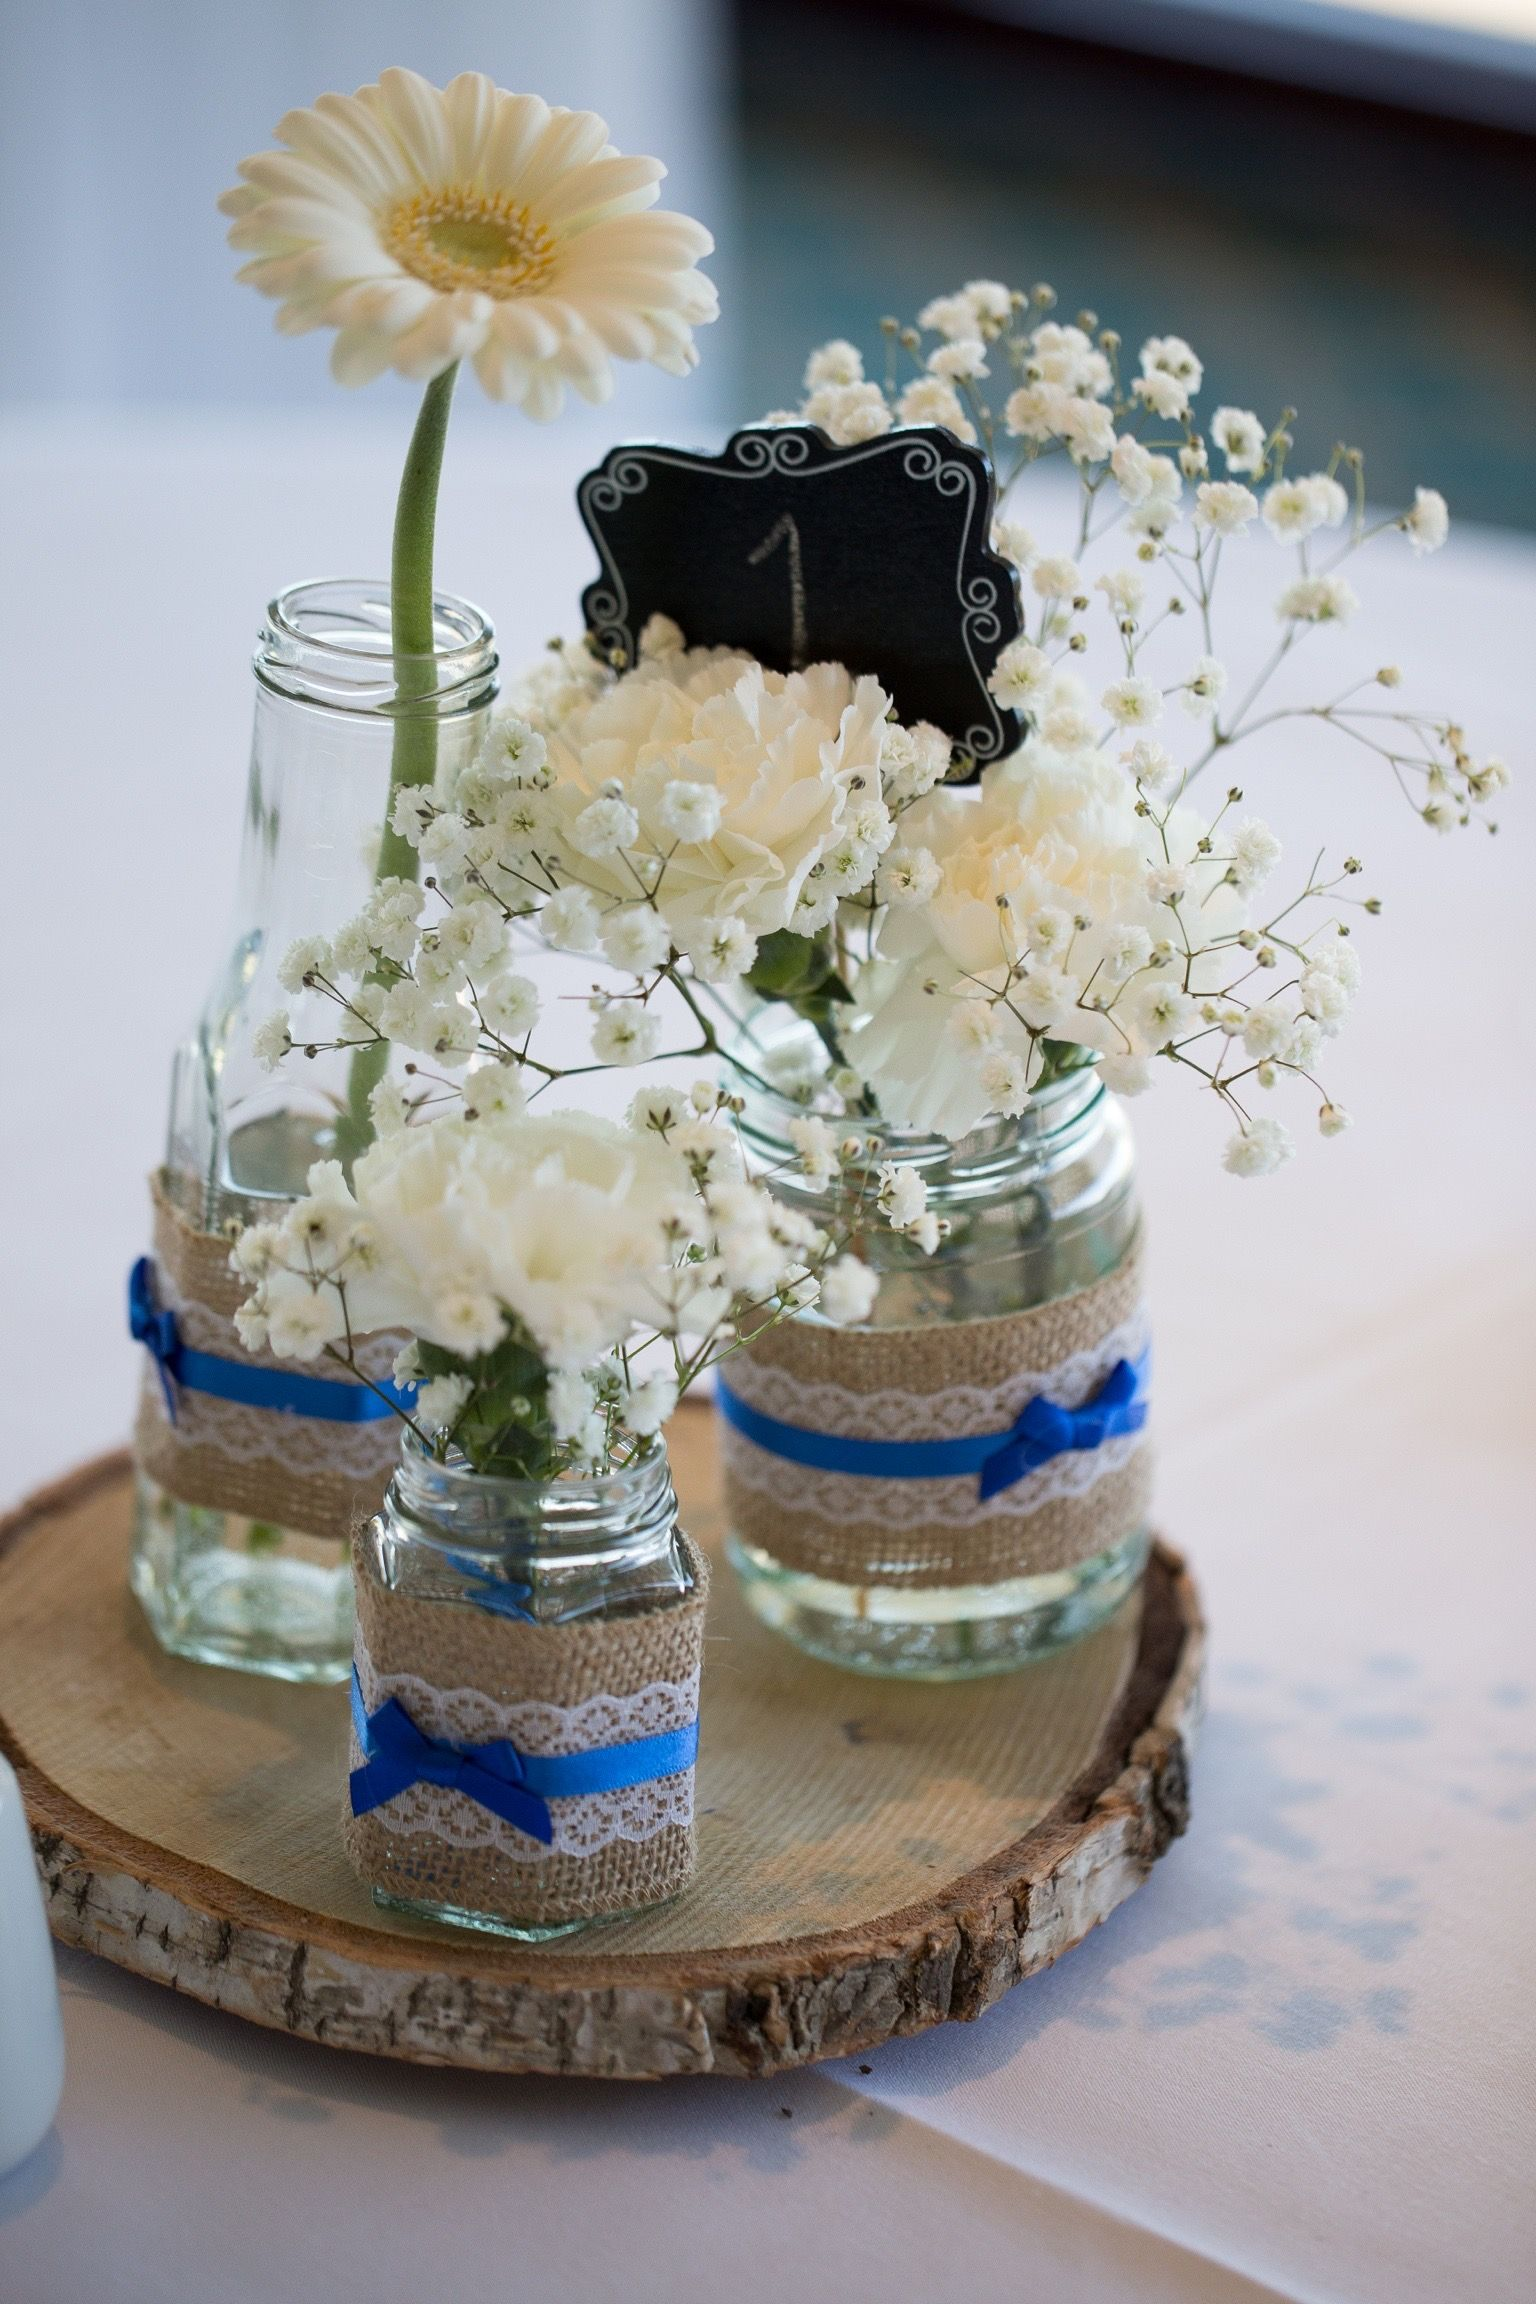 Handmade Mason Jar Decor Using Hessian With White Lace And Added